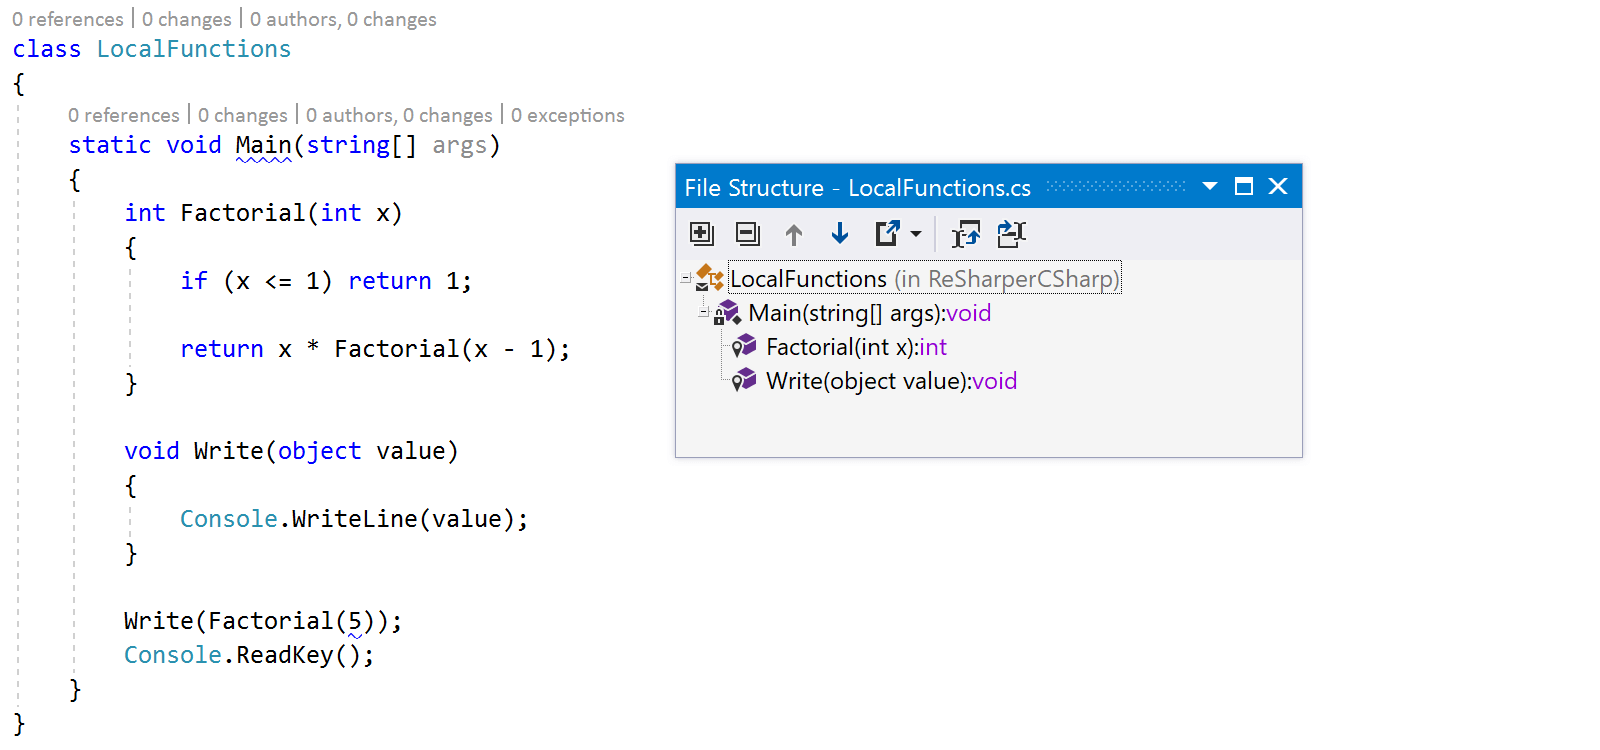 Local functions in ReSharper file structure tool window